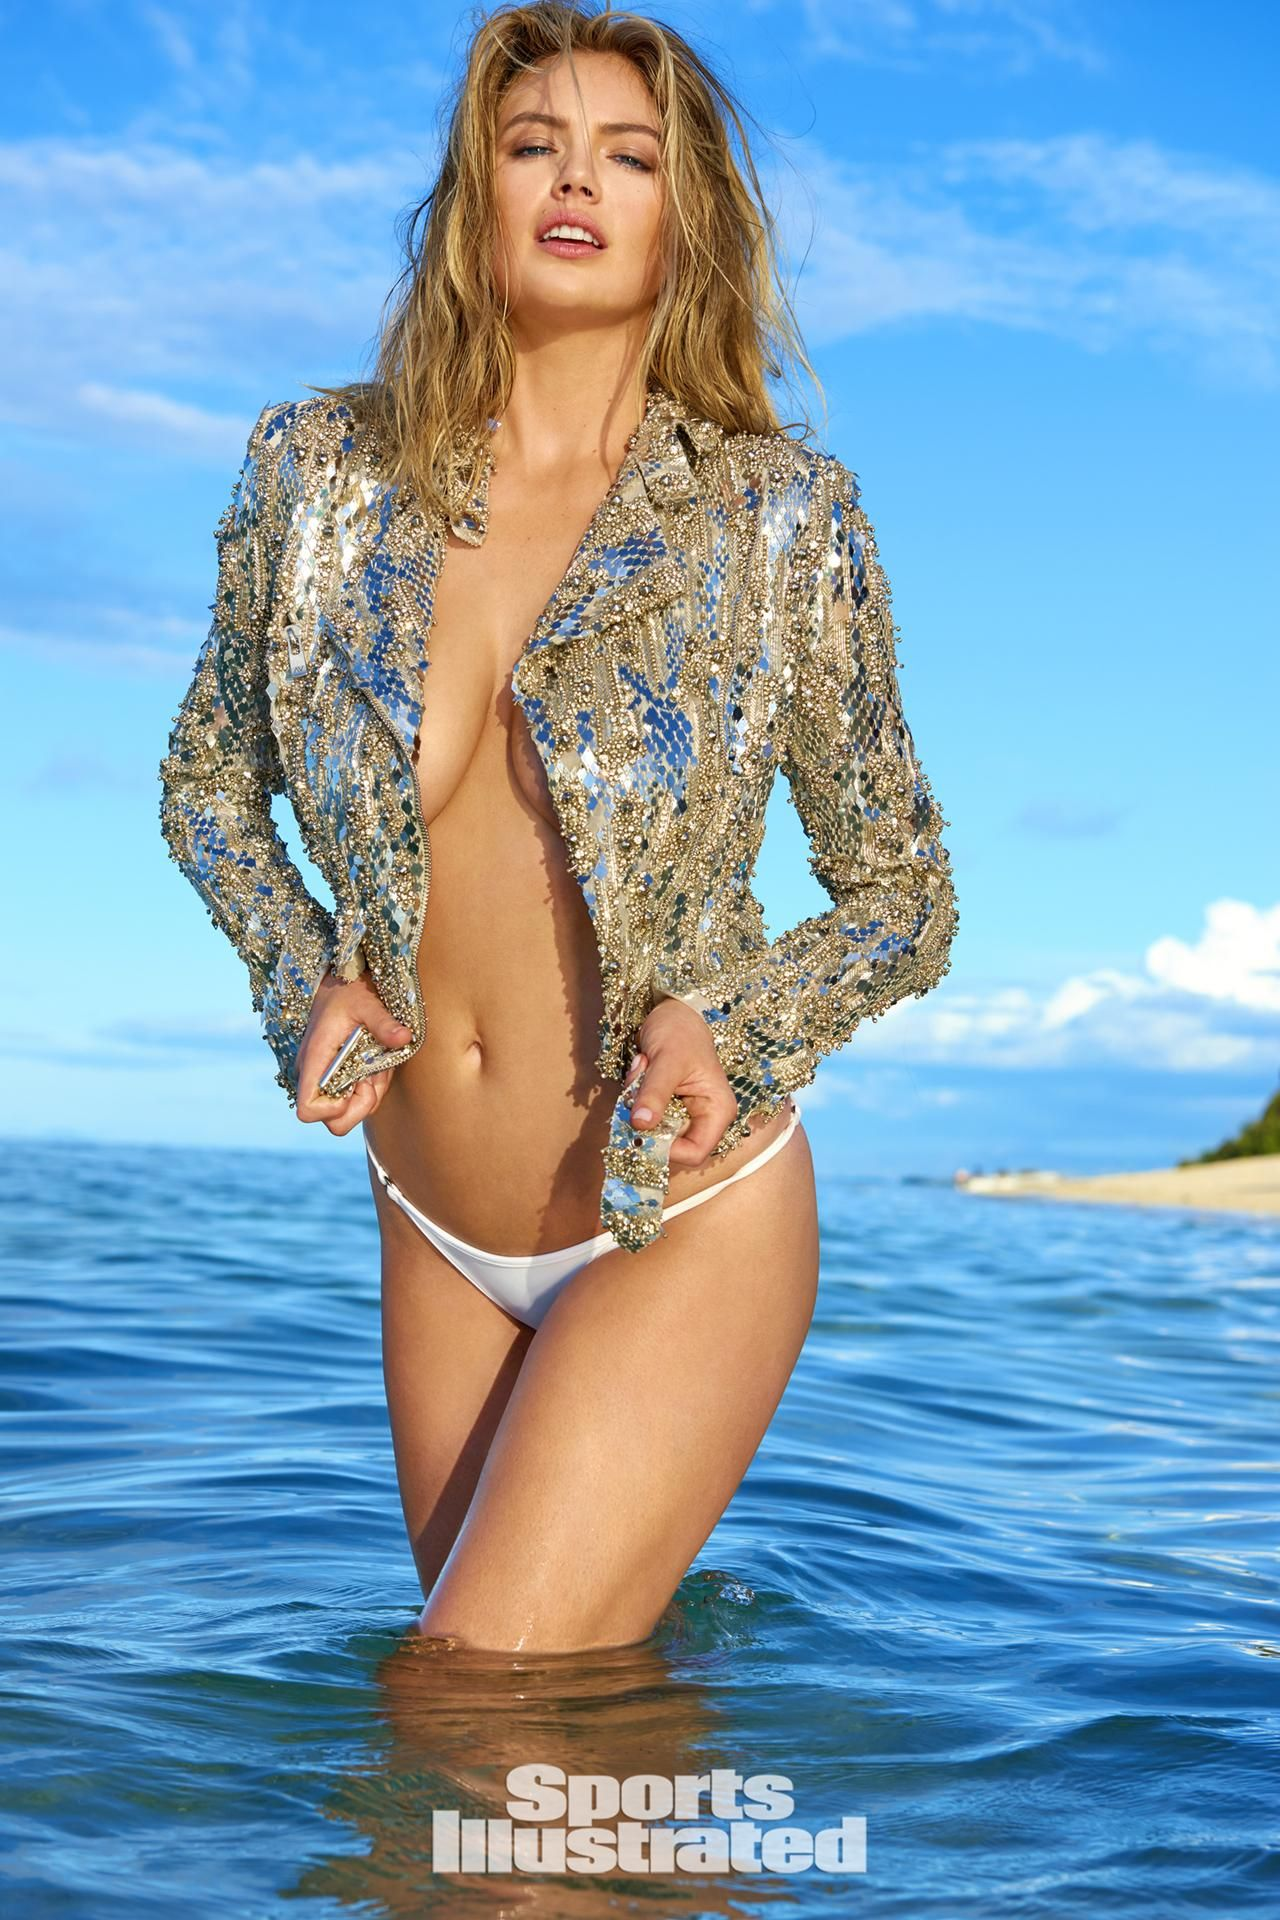 47 Kate Upton Pics From SI Swimsuit 2014 nudes (67 photos), Instagram Celebrites photo